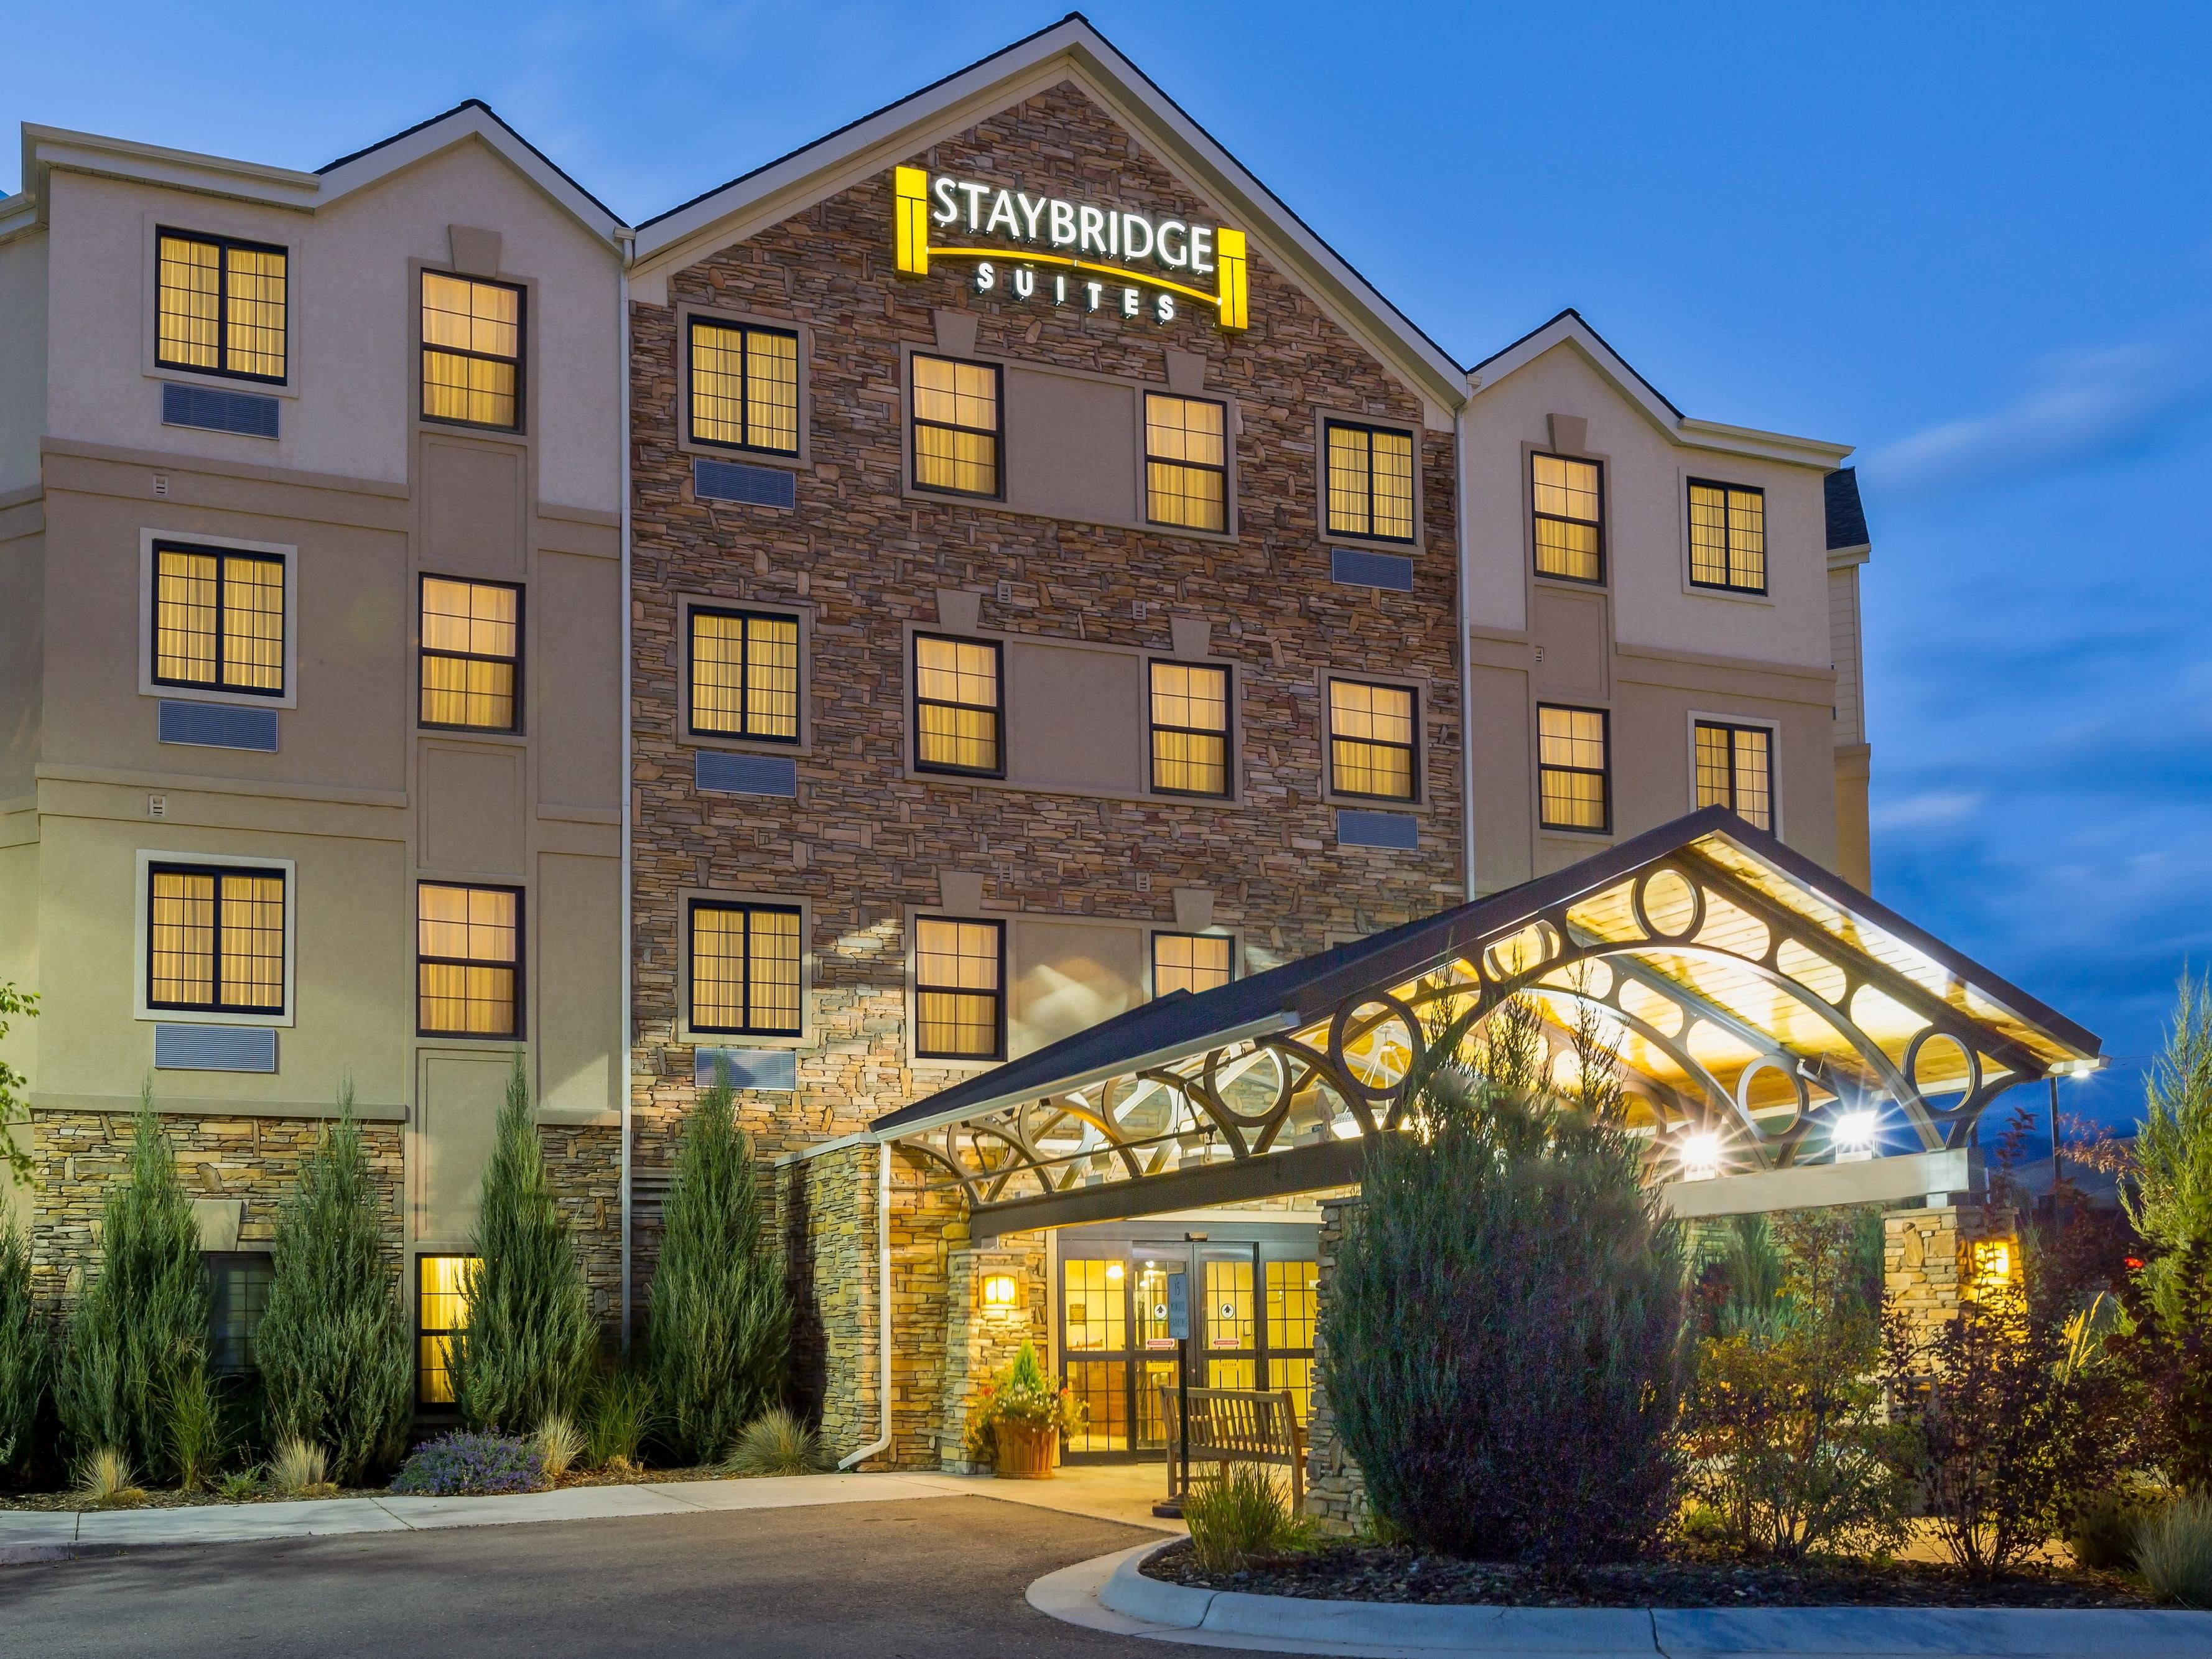 Missoula Hotels Staybridge Suites Extended Stay Hotel In Montana